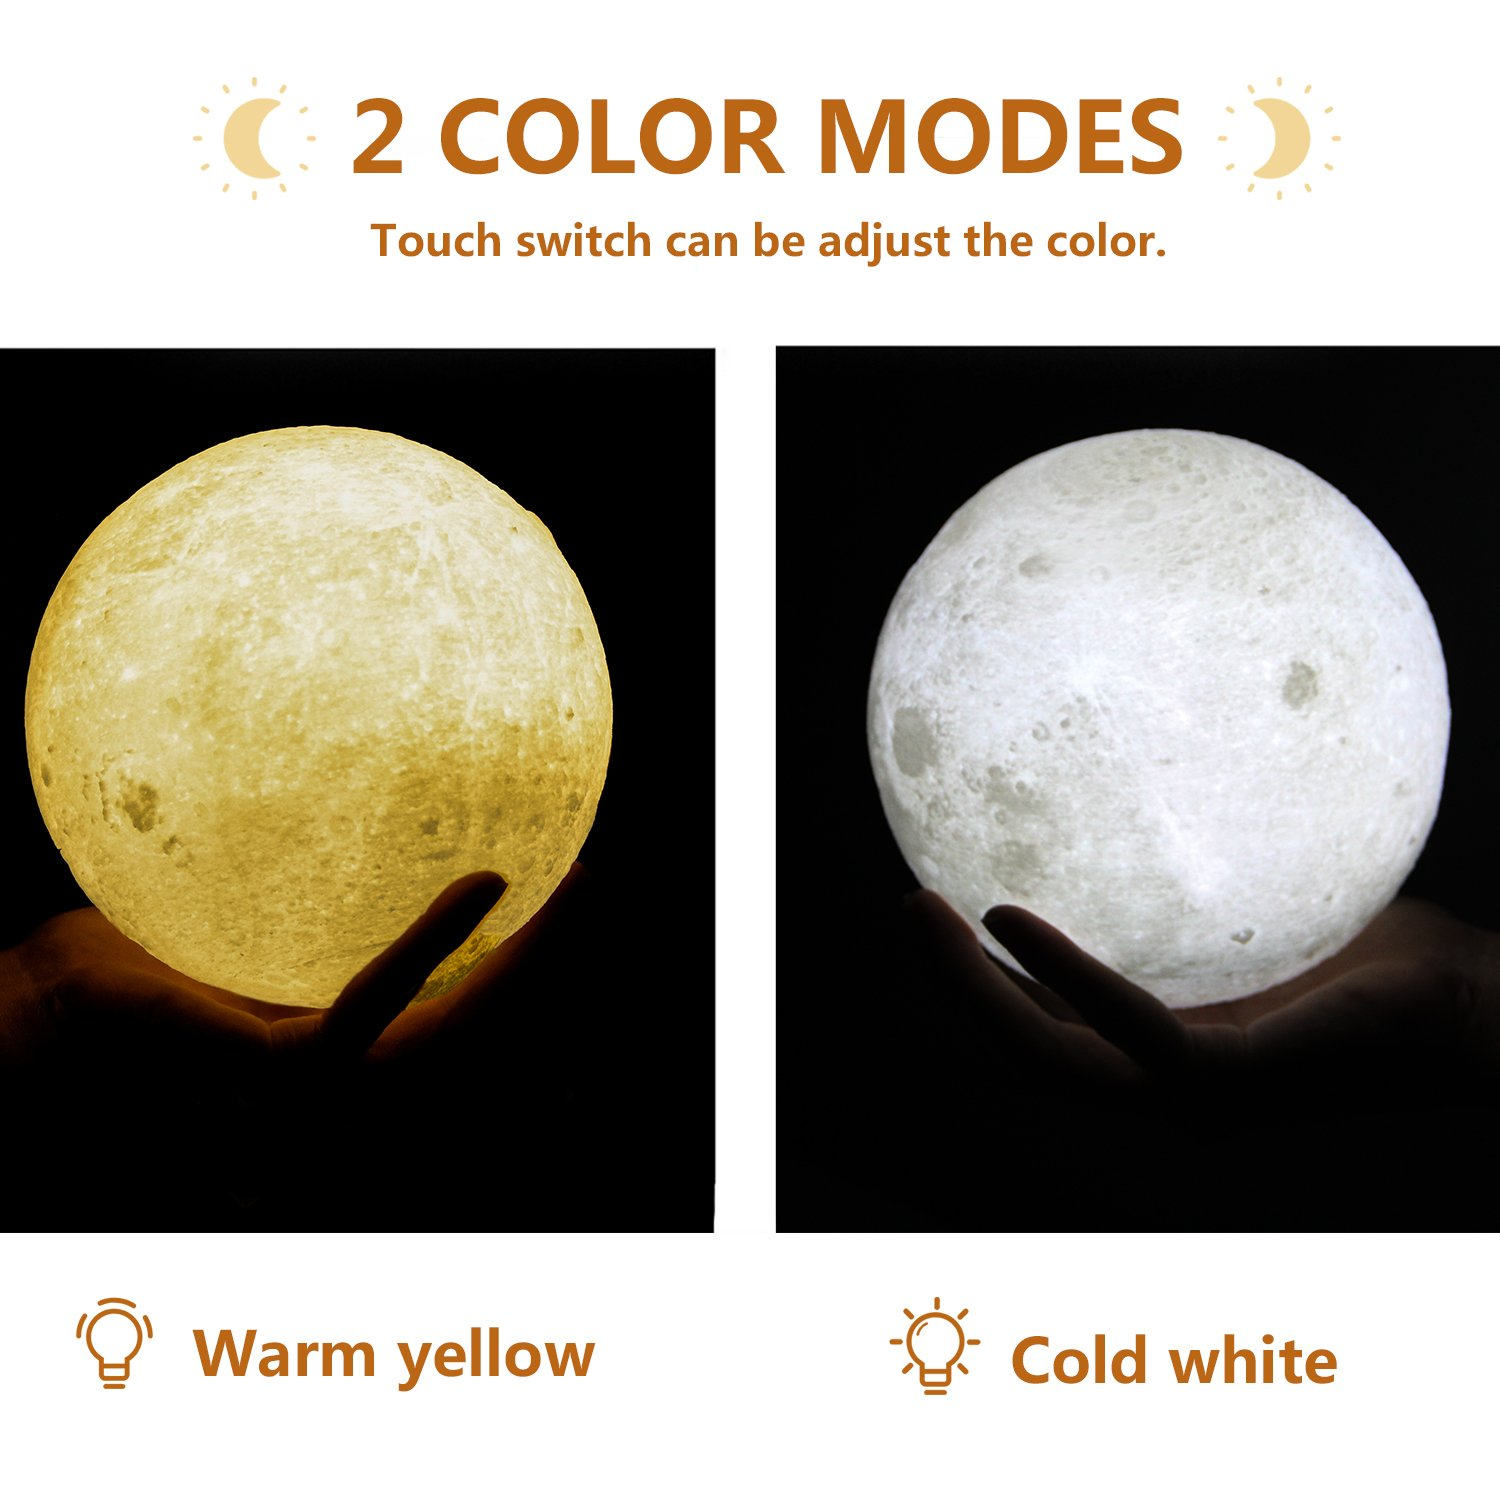 Bealatt Moon Lamp, 3D Printing Moon Light 5.9 Inch Glowing Moon Lamp Touch Control Adjustable Brightness Light Cool and Warm White, Led Night Light with Stand for Kids, Birthday, Bedside by Bealatt (Image #3)